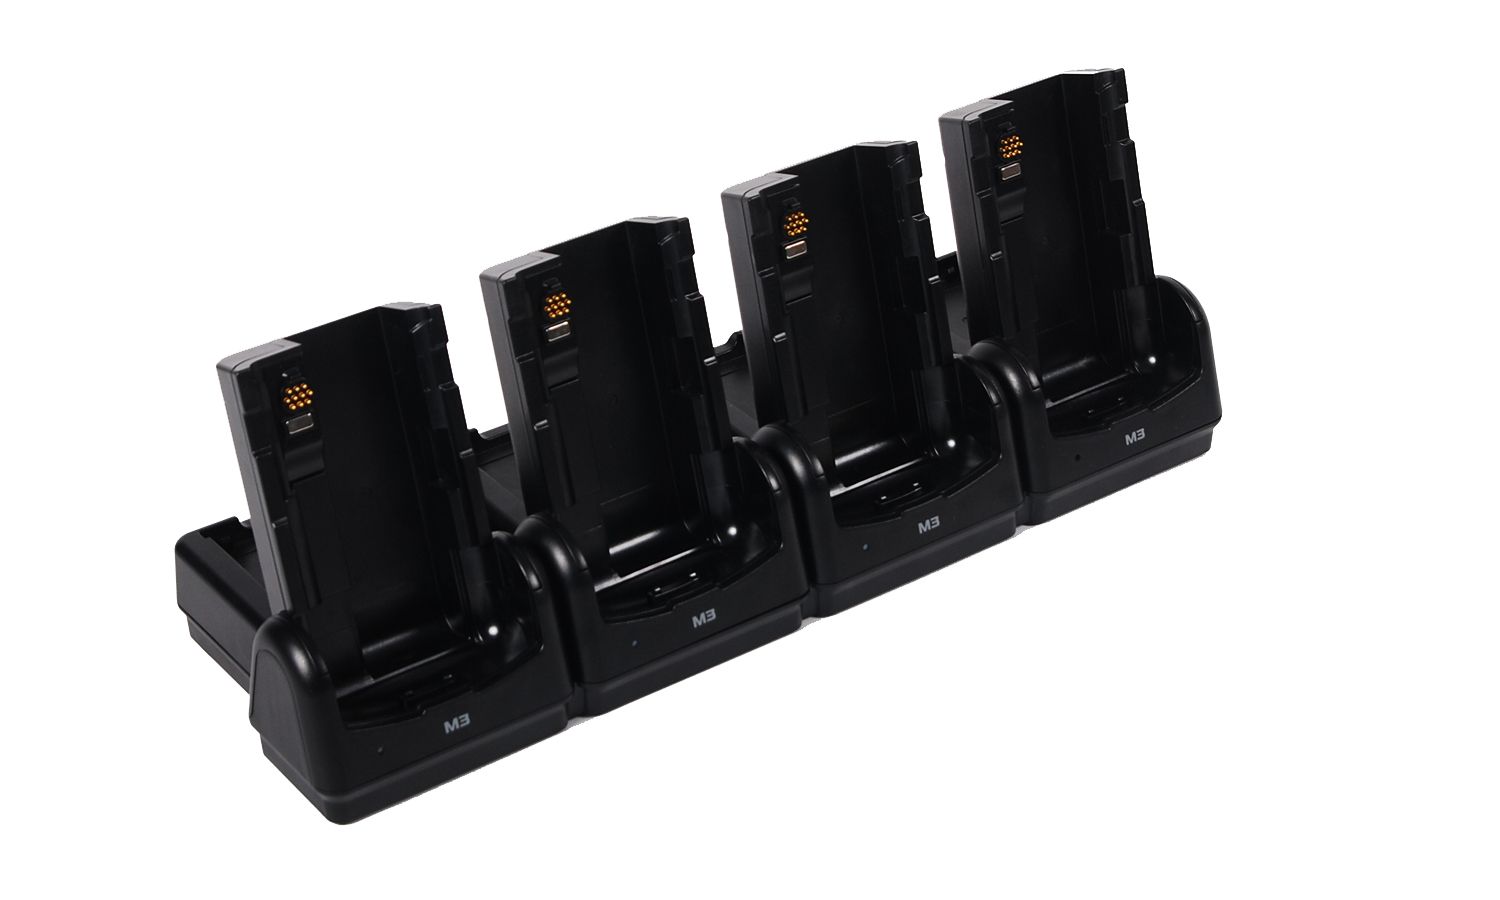 8 Slot Ethernet Cradle